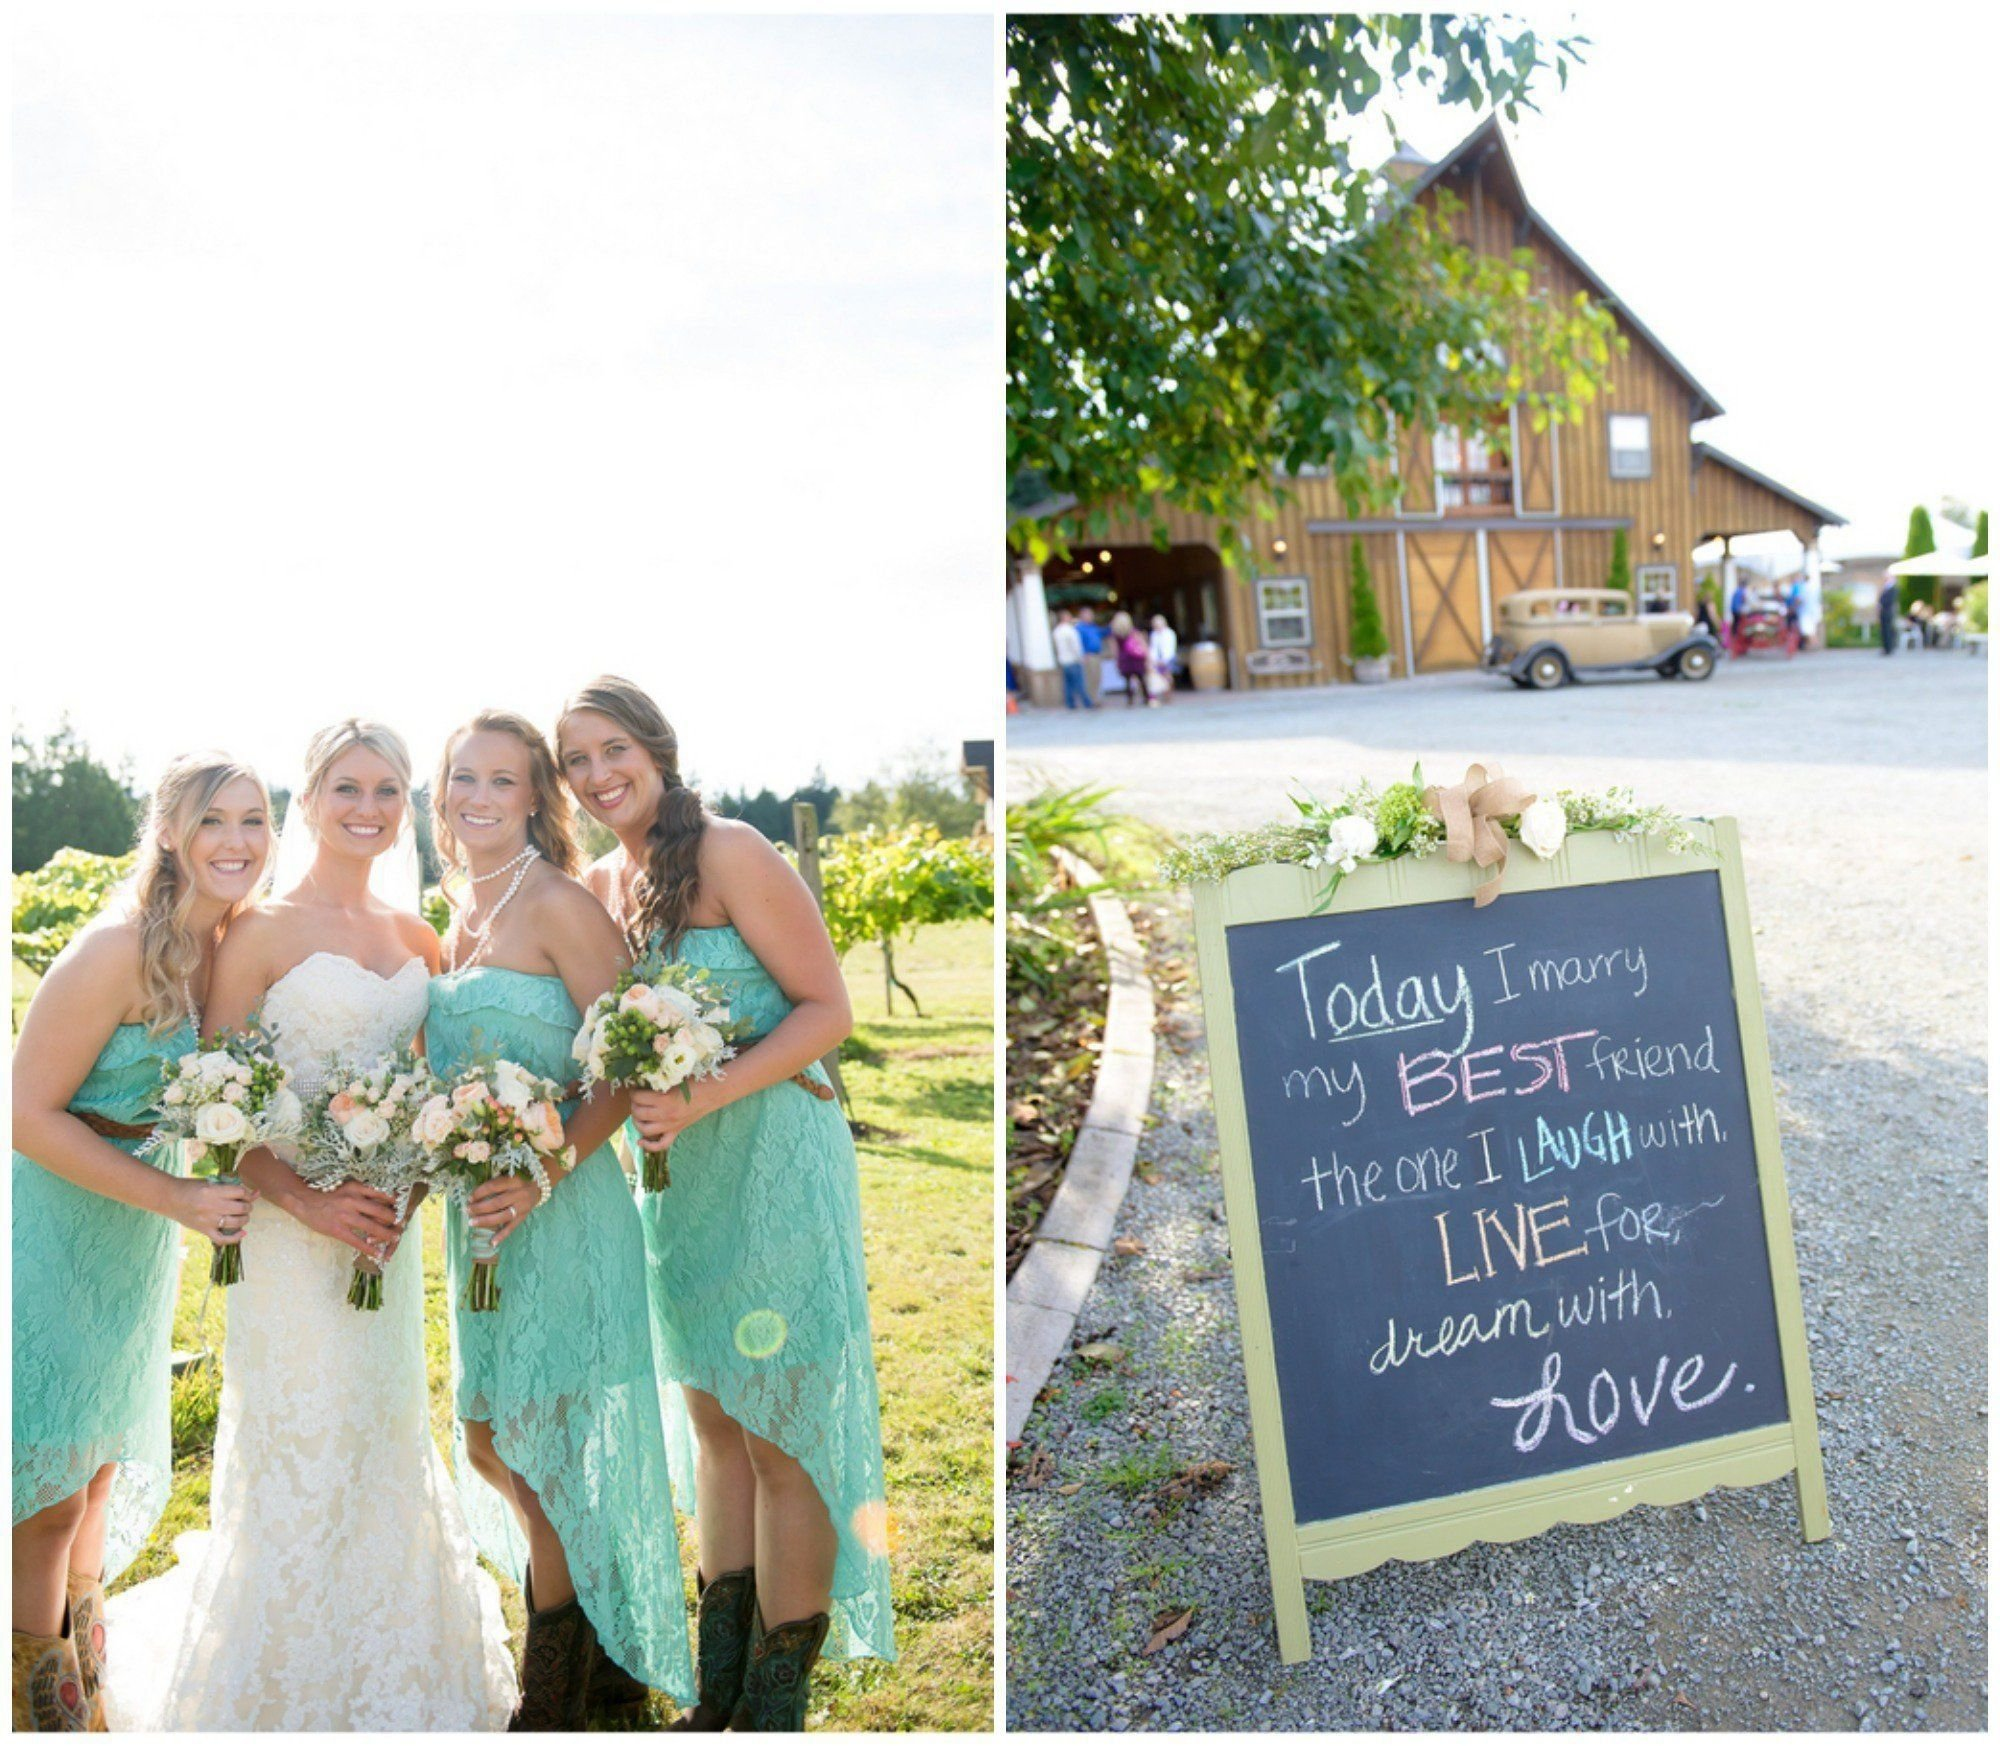 10 Cute Rustic Wedding Ideas On A Budget country wedding on a budget rustic wedding chic 1 2020